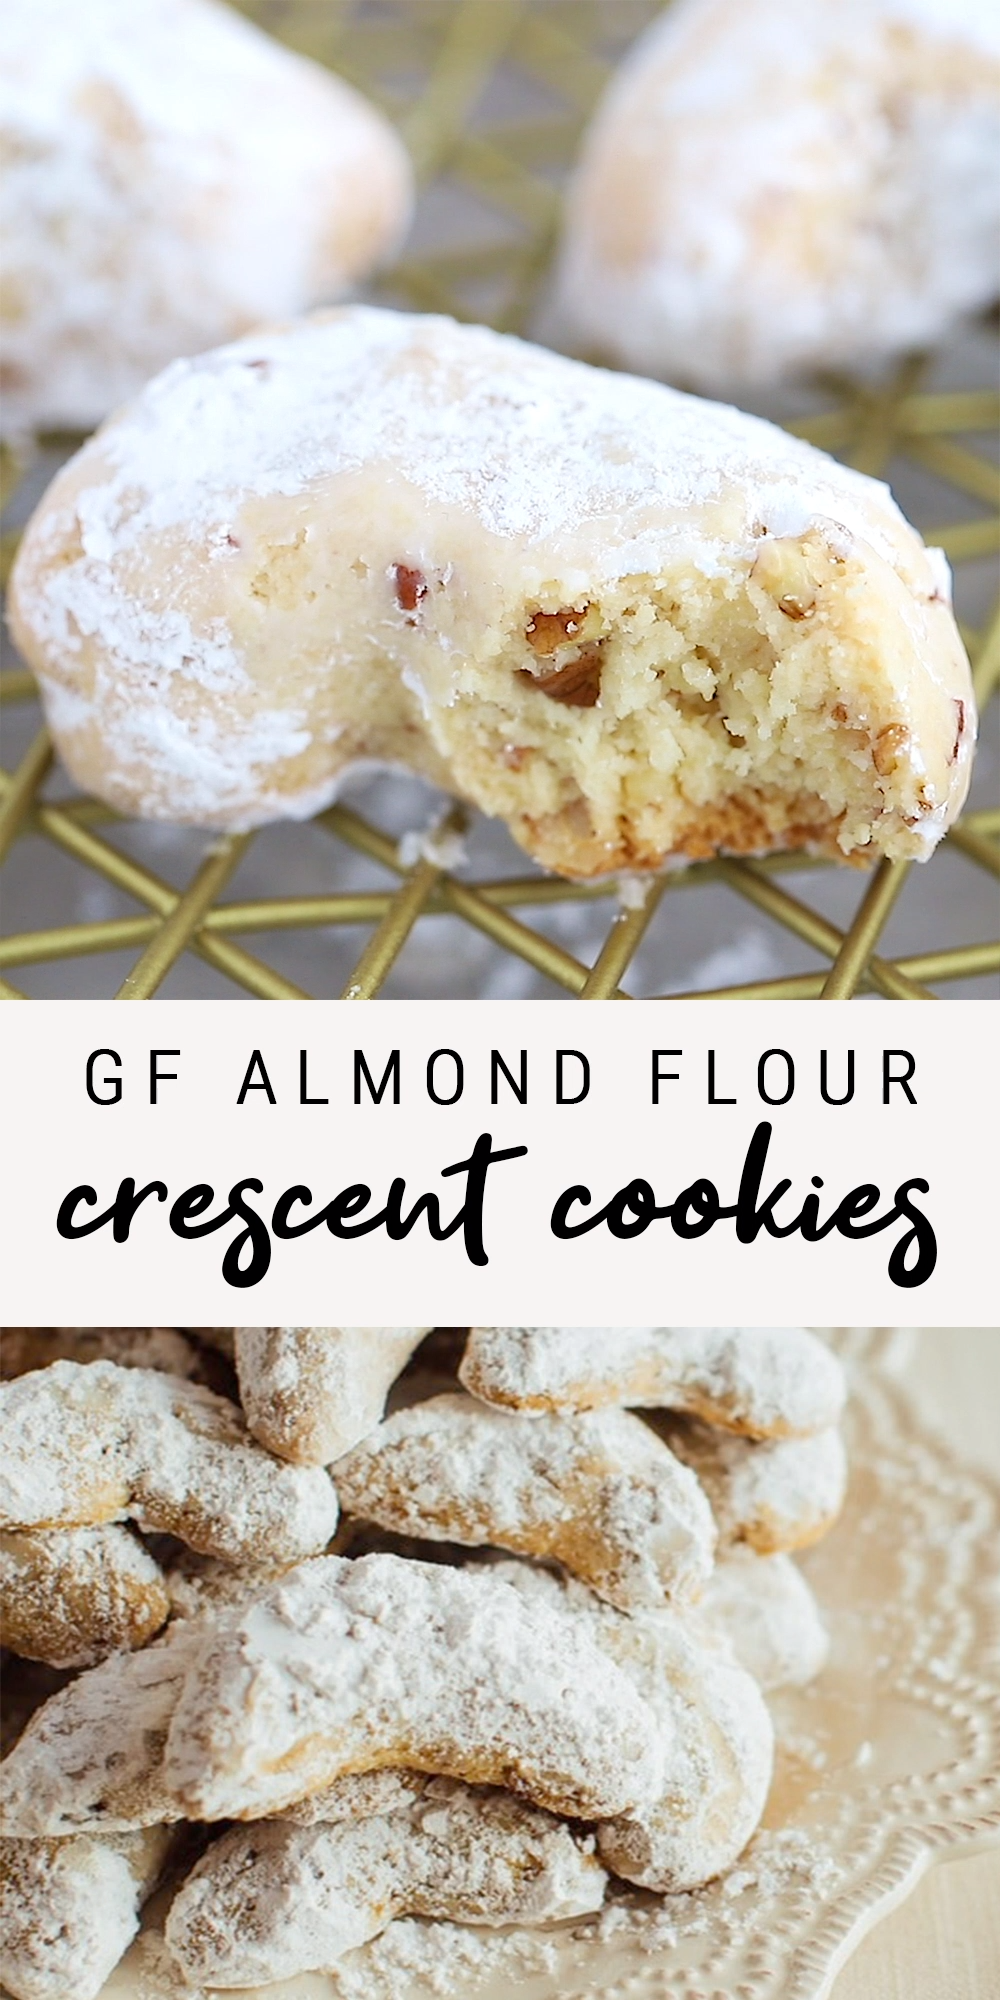 Gluten-Free Almond Flour Crescent Cookies | Eating Bird Food